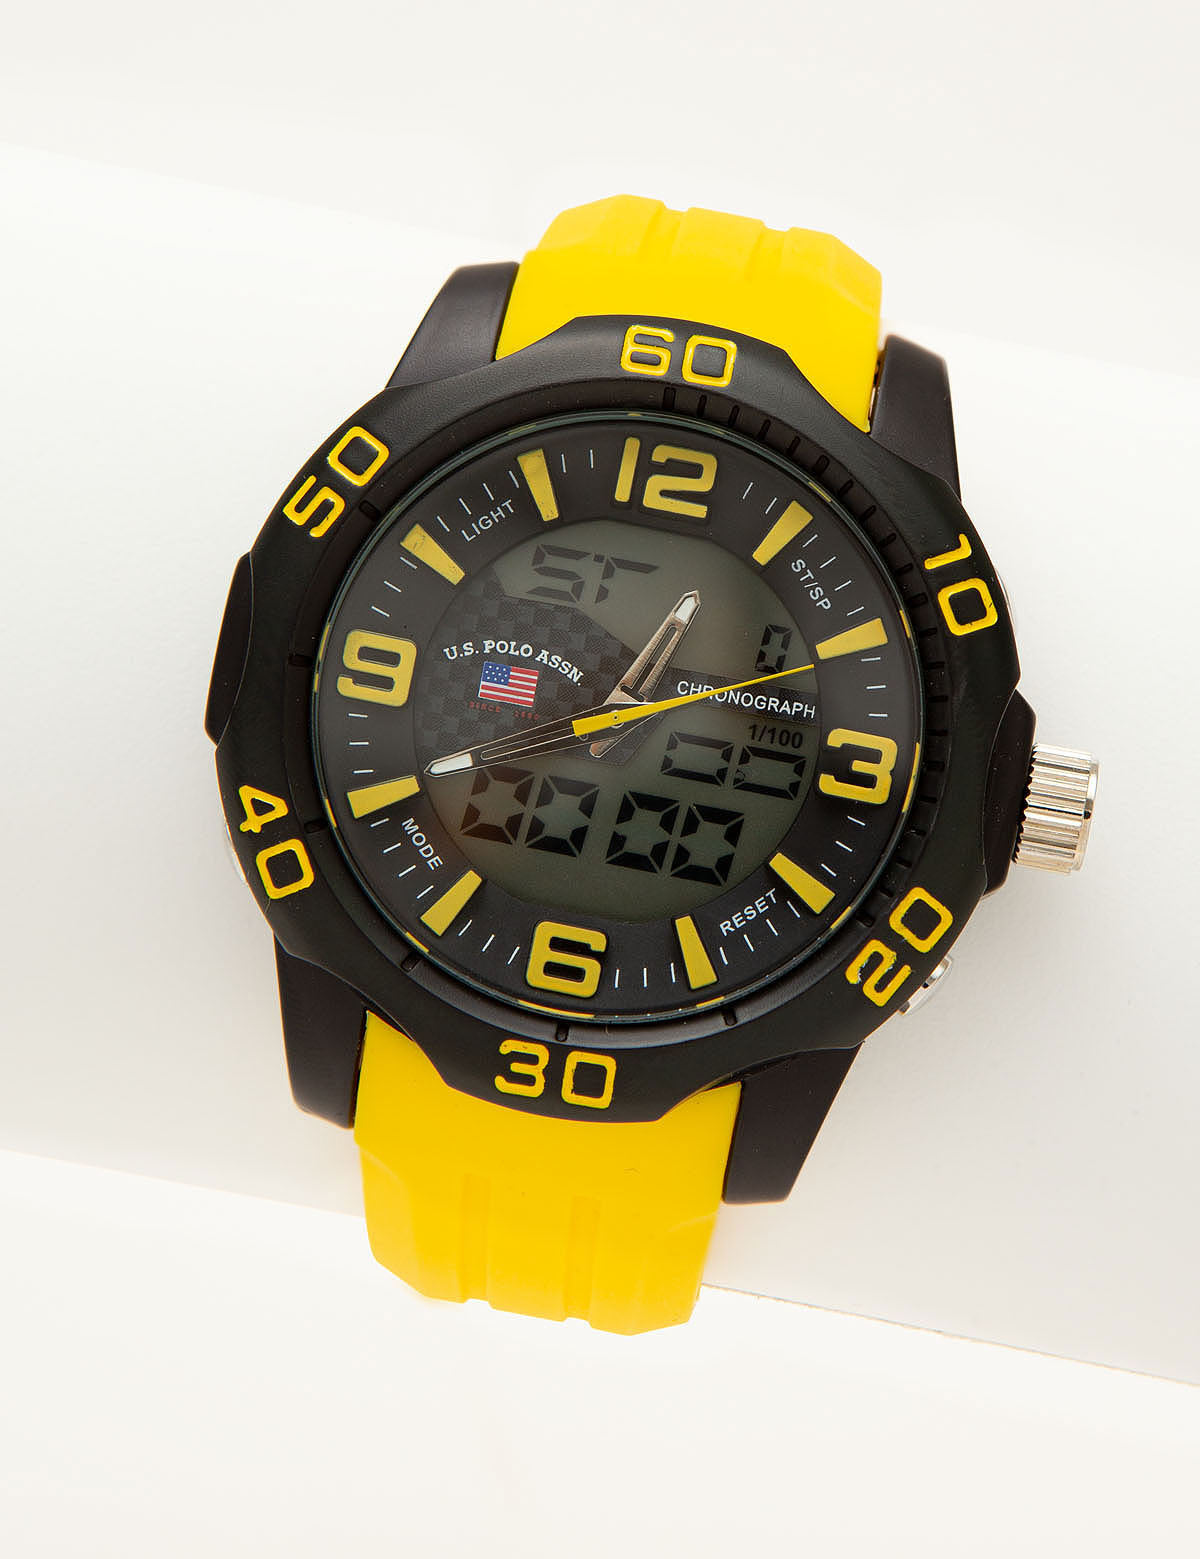 MEN'S YELLOW ANA DIGI SPORT WATCH - U.S. Polo Assn.